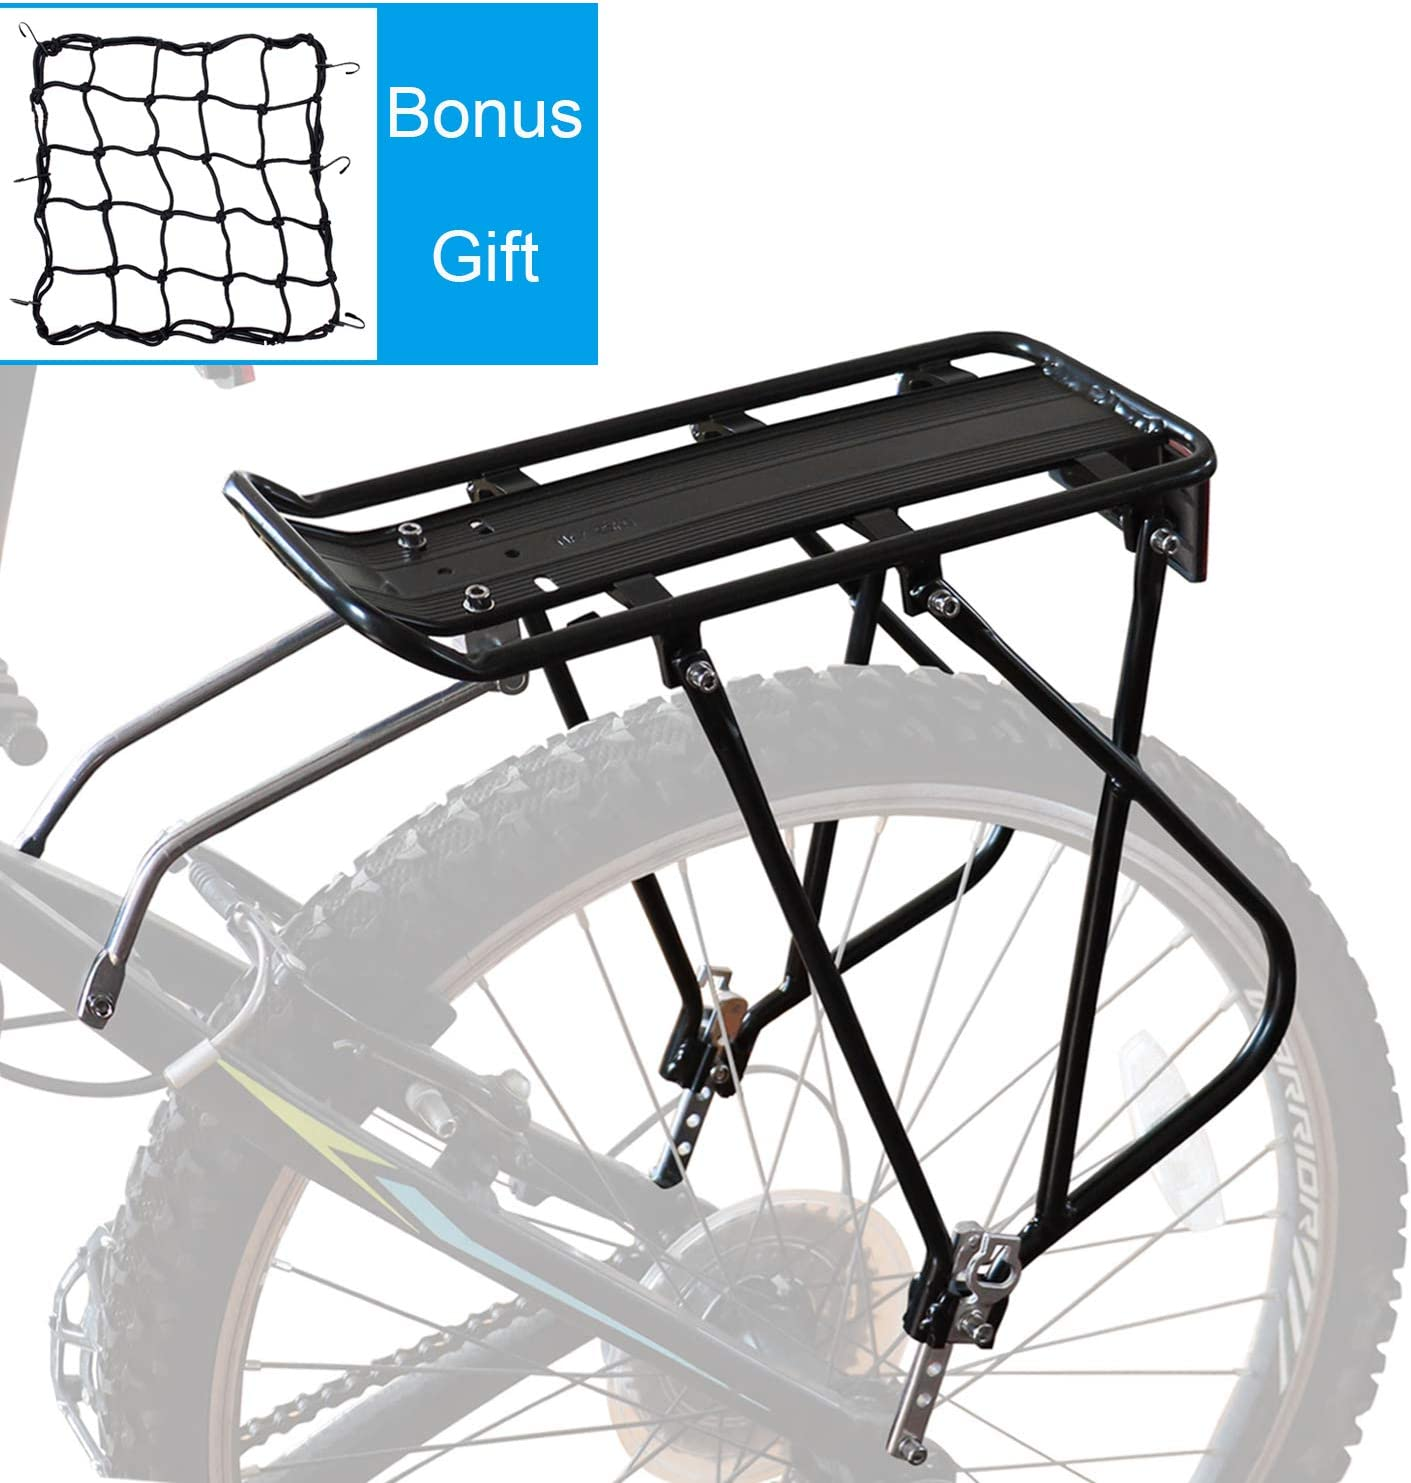 wowitsyou Bungee Cargo Net